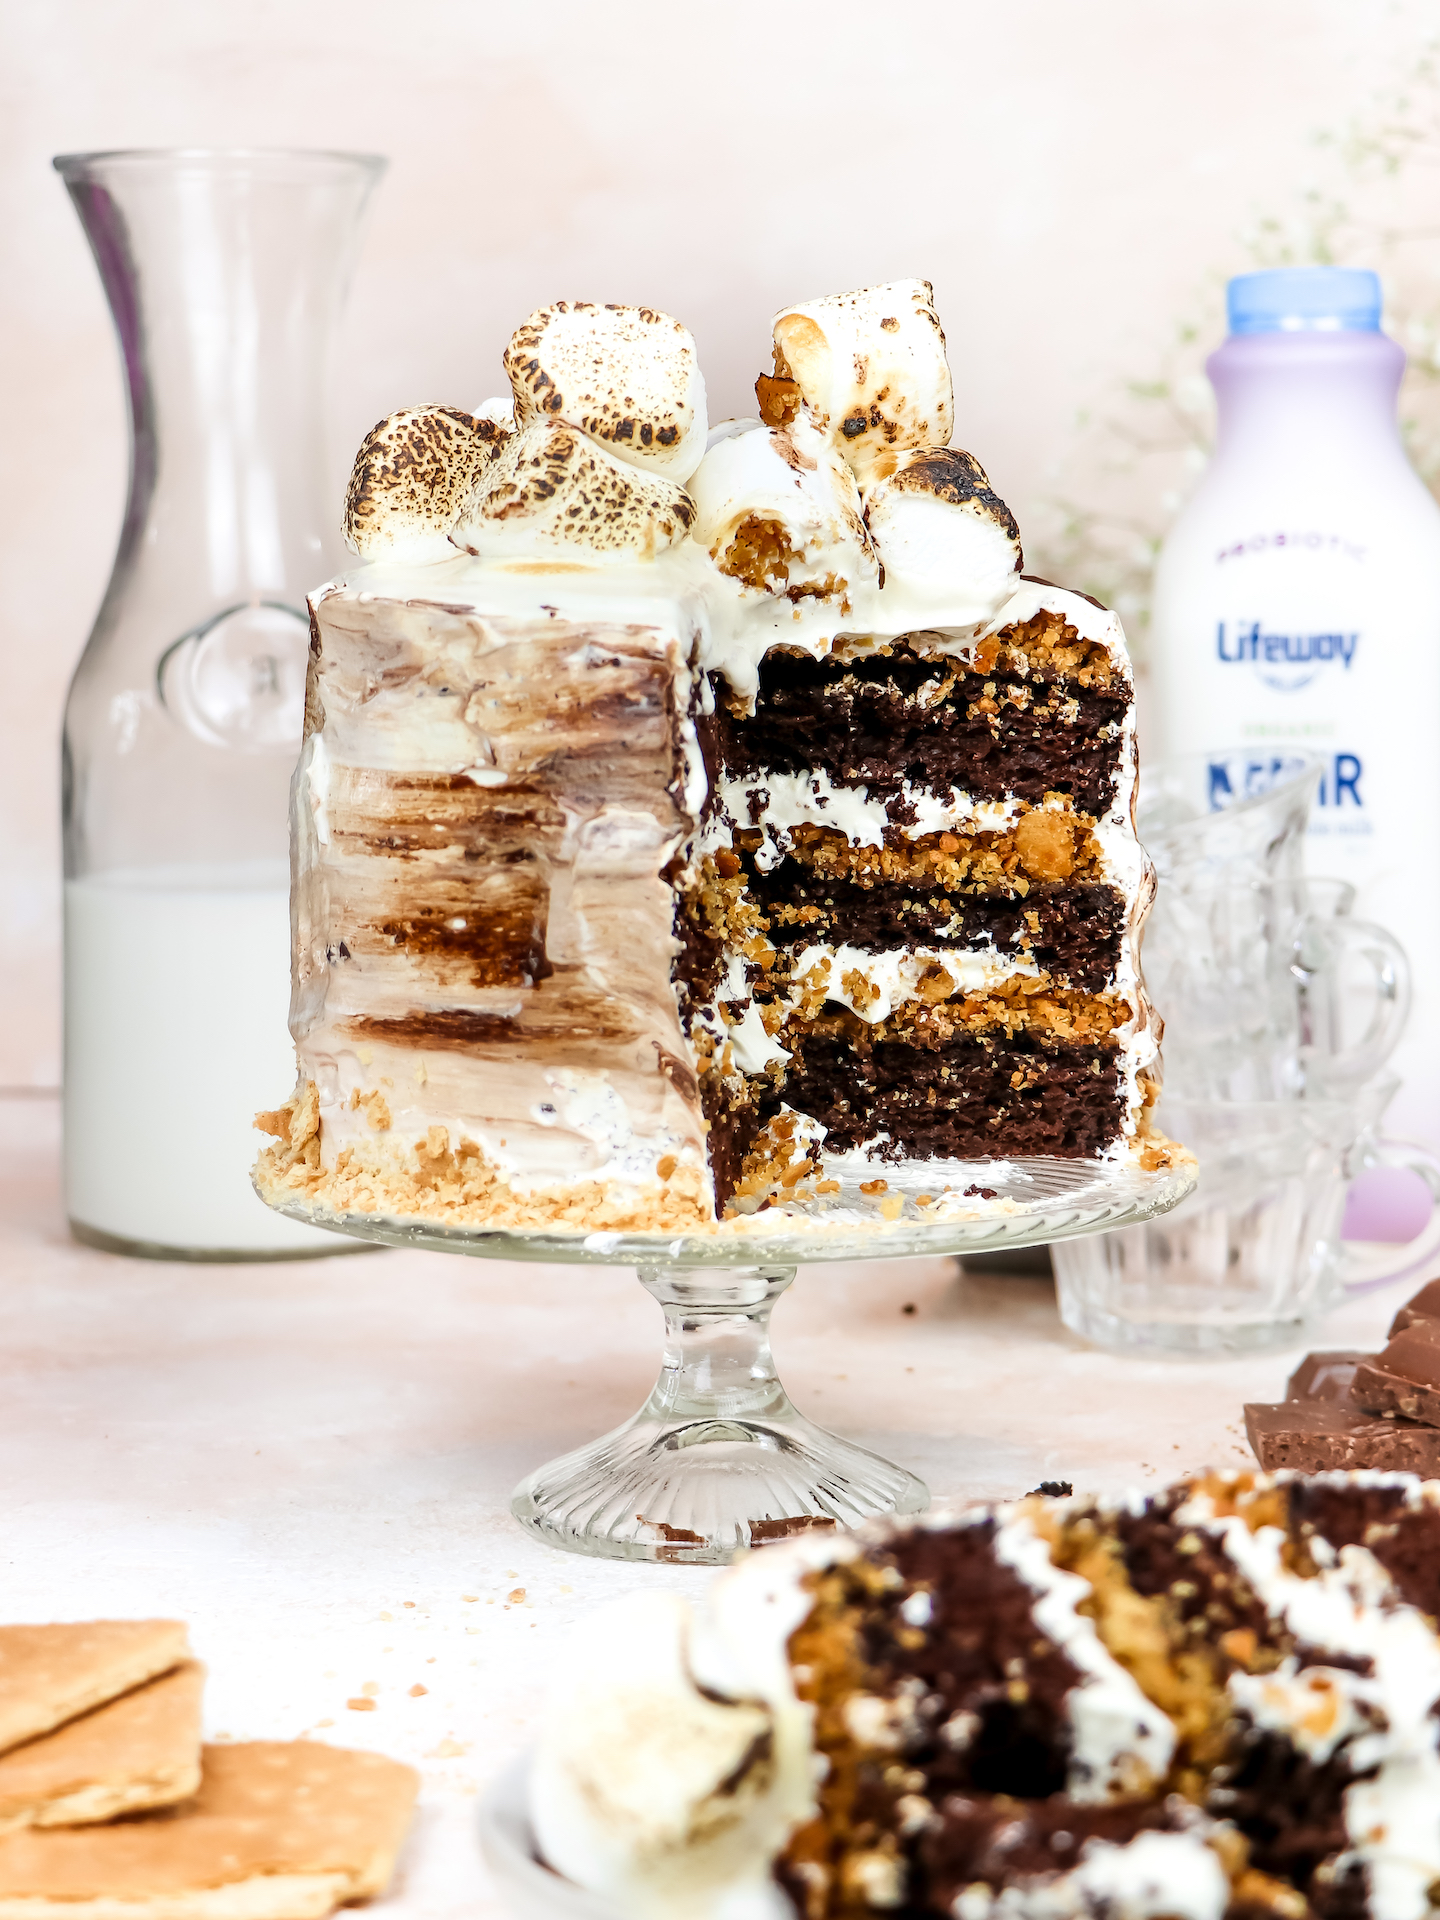 S'mores Layered Cake (Olive Oil Chocolate Cake Made with Kefir)